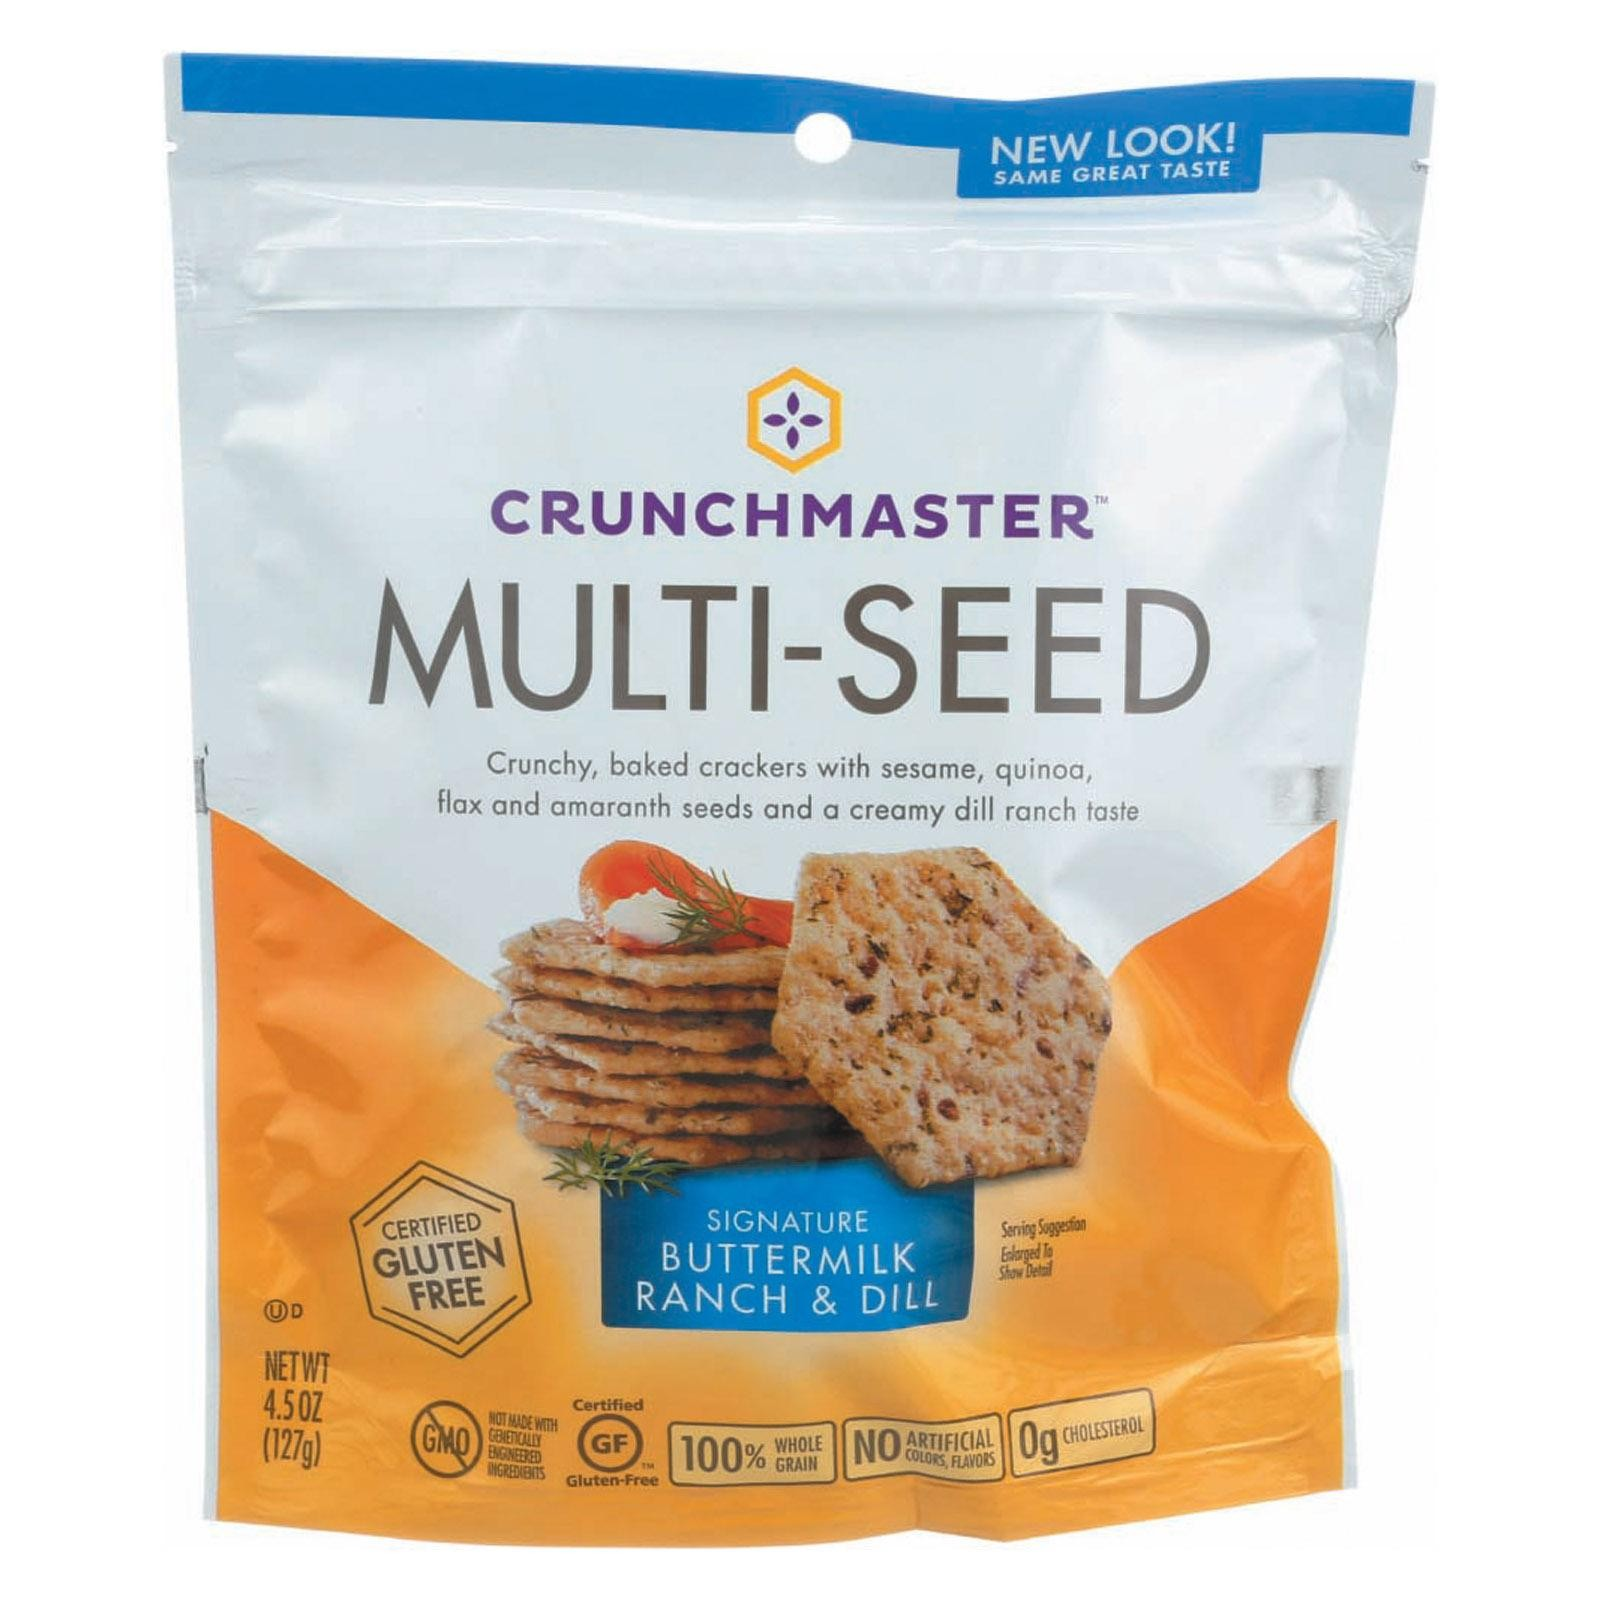 Crunchmaster Multi-seed Cracker - Signature Buttermilk Ranch & Dill - pack of 12 - 4.5 Oz